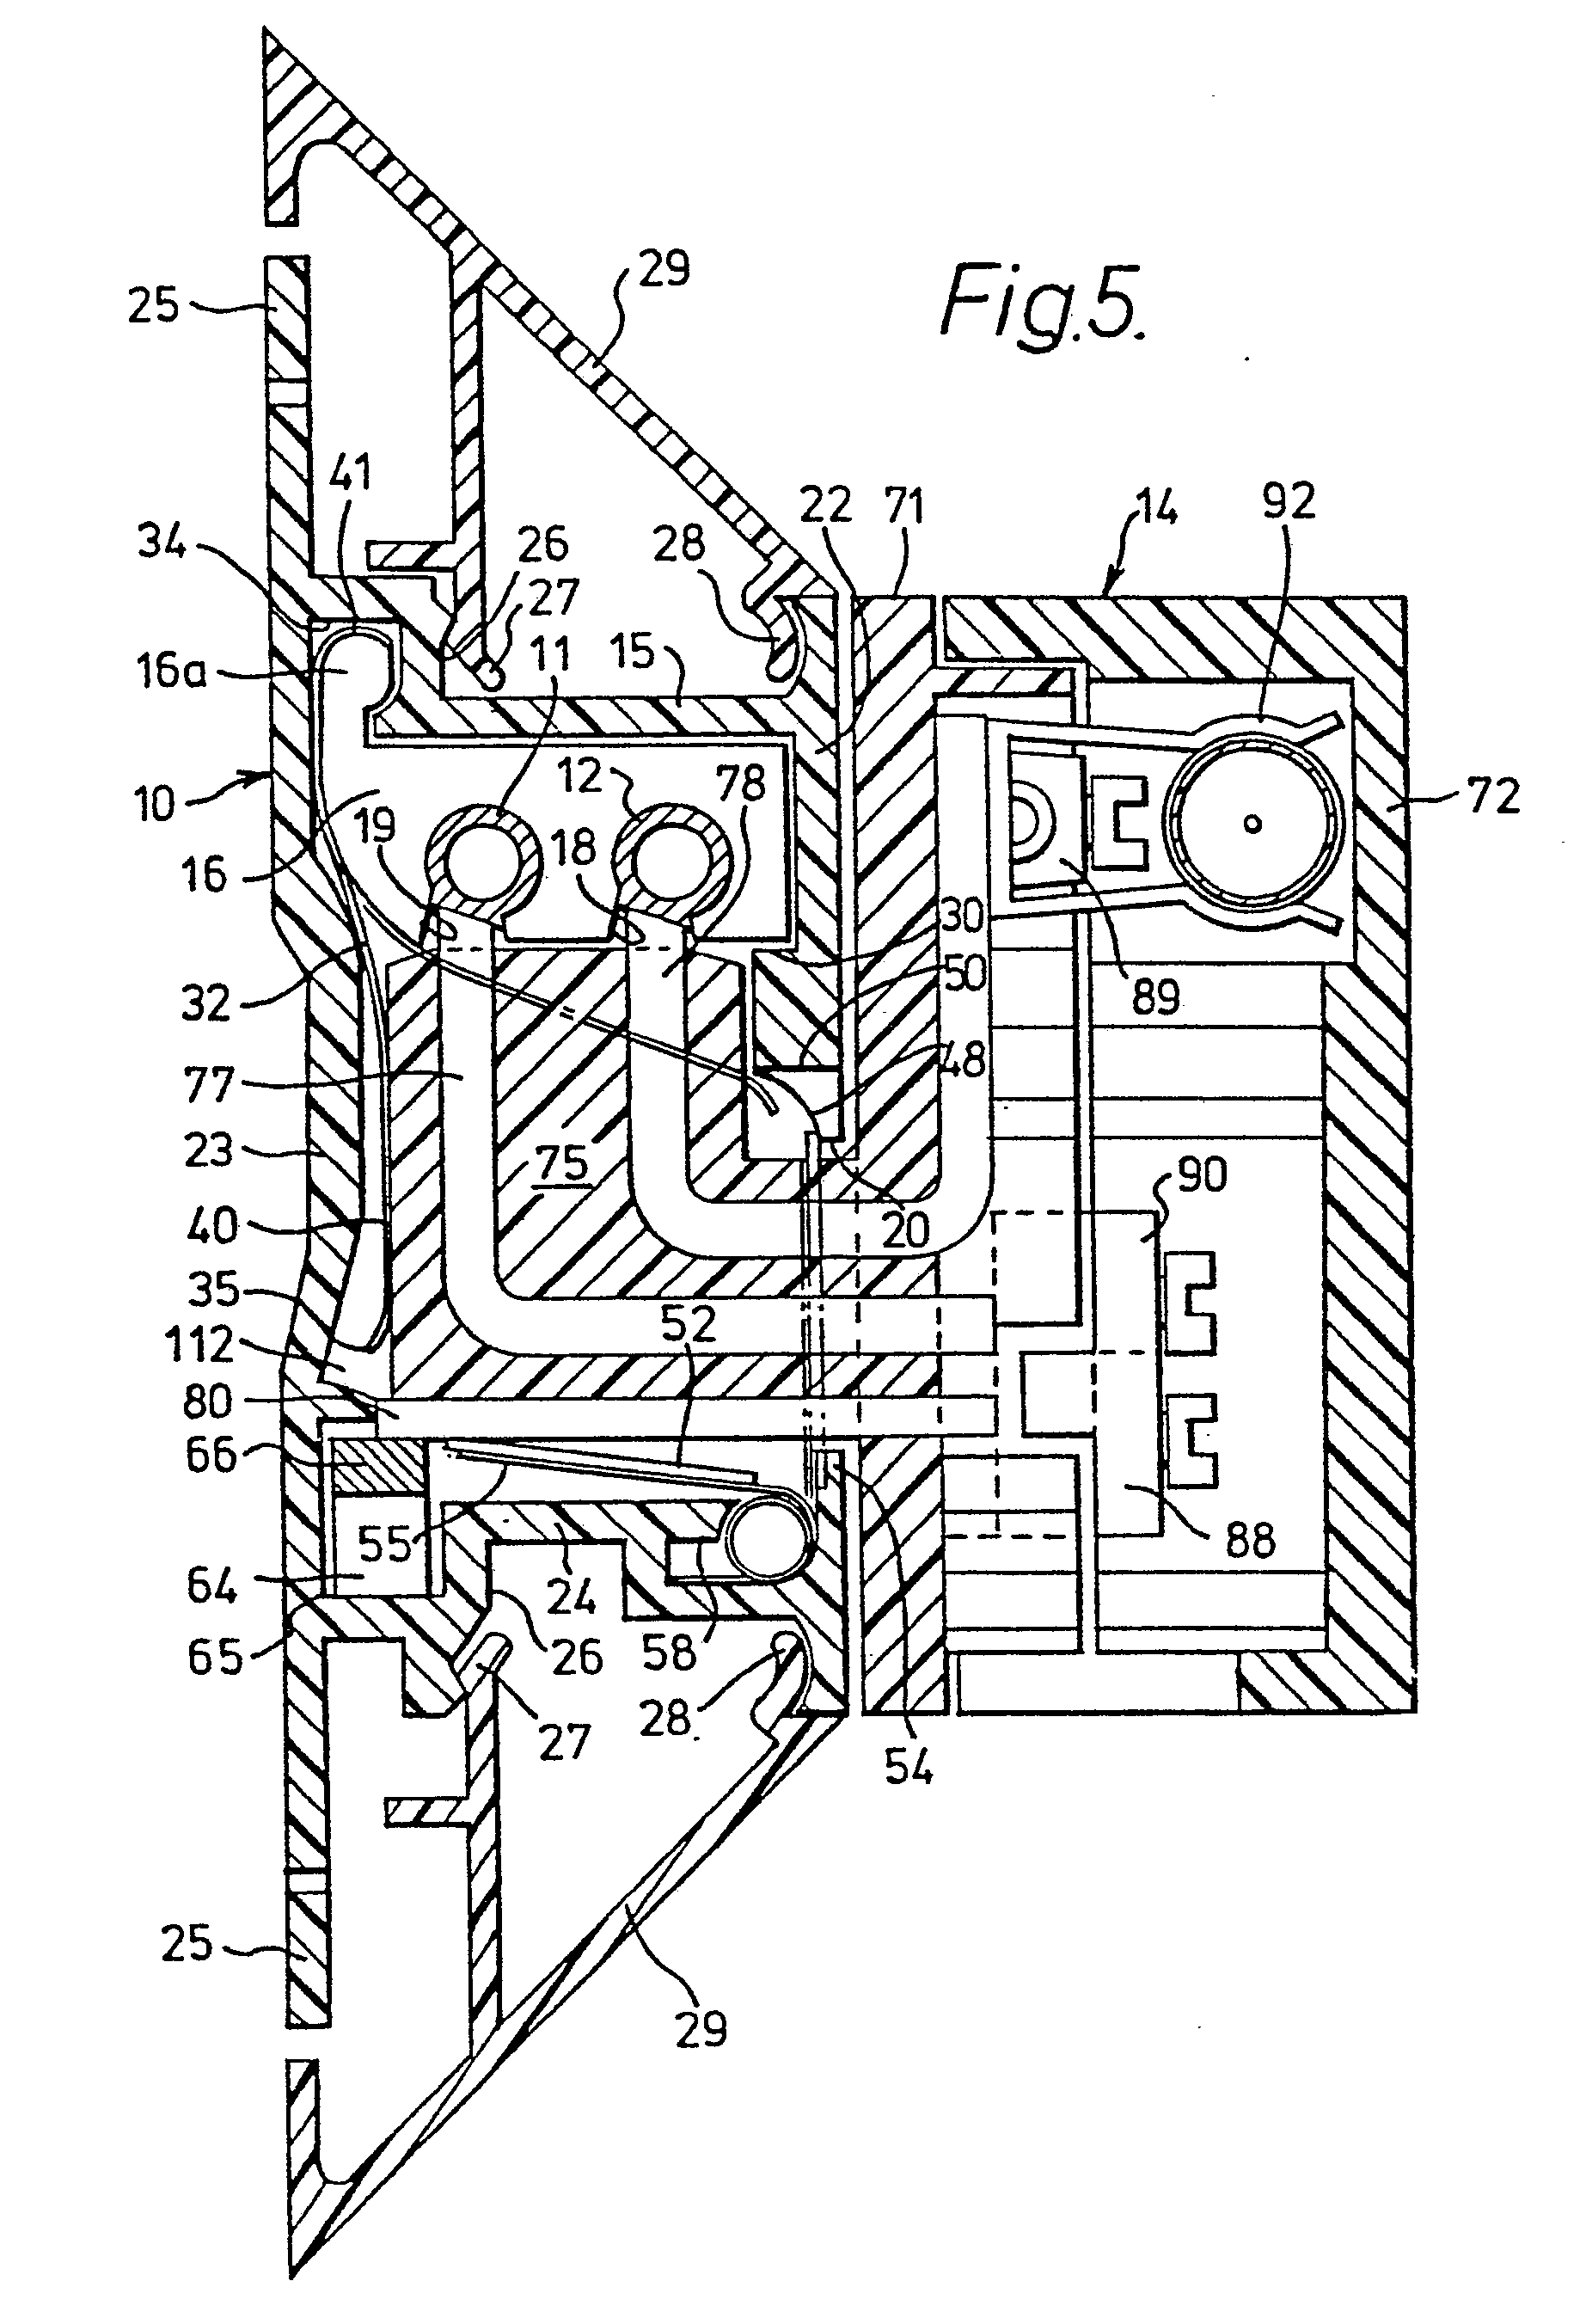 Watch in addition RepairGuideContent additionally 2n9  Engine Wiring Diagrams 96 98 Dodge Ram 1500 likewise Jeep Cherokee Sport Engine Diagram together with 91 Corolla Fuel Pump. on 96 dakota ignition switch wiring